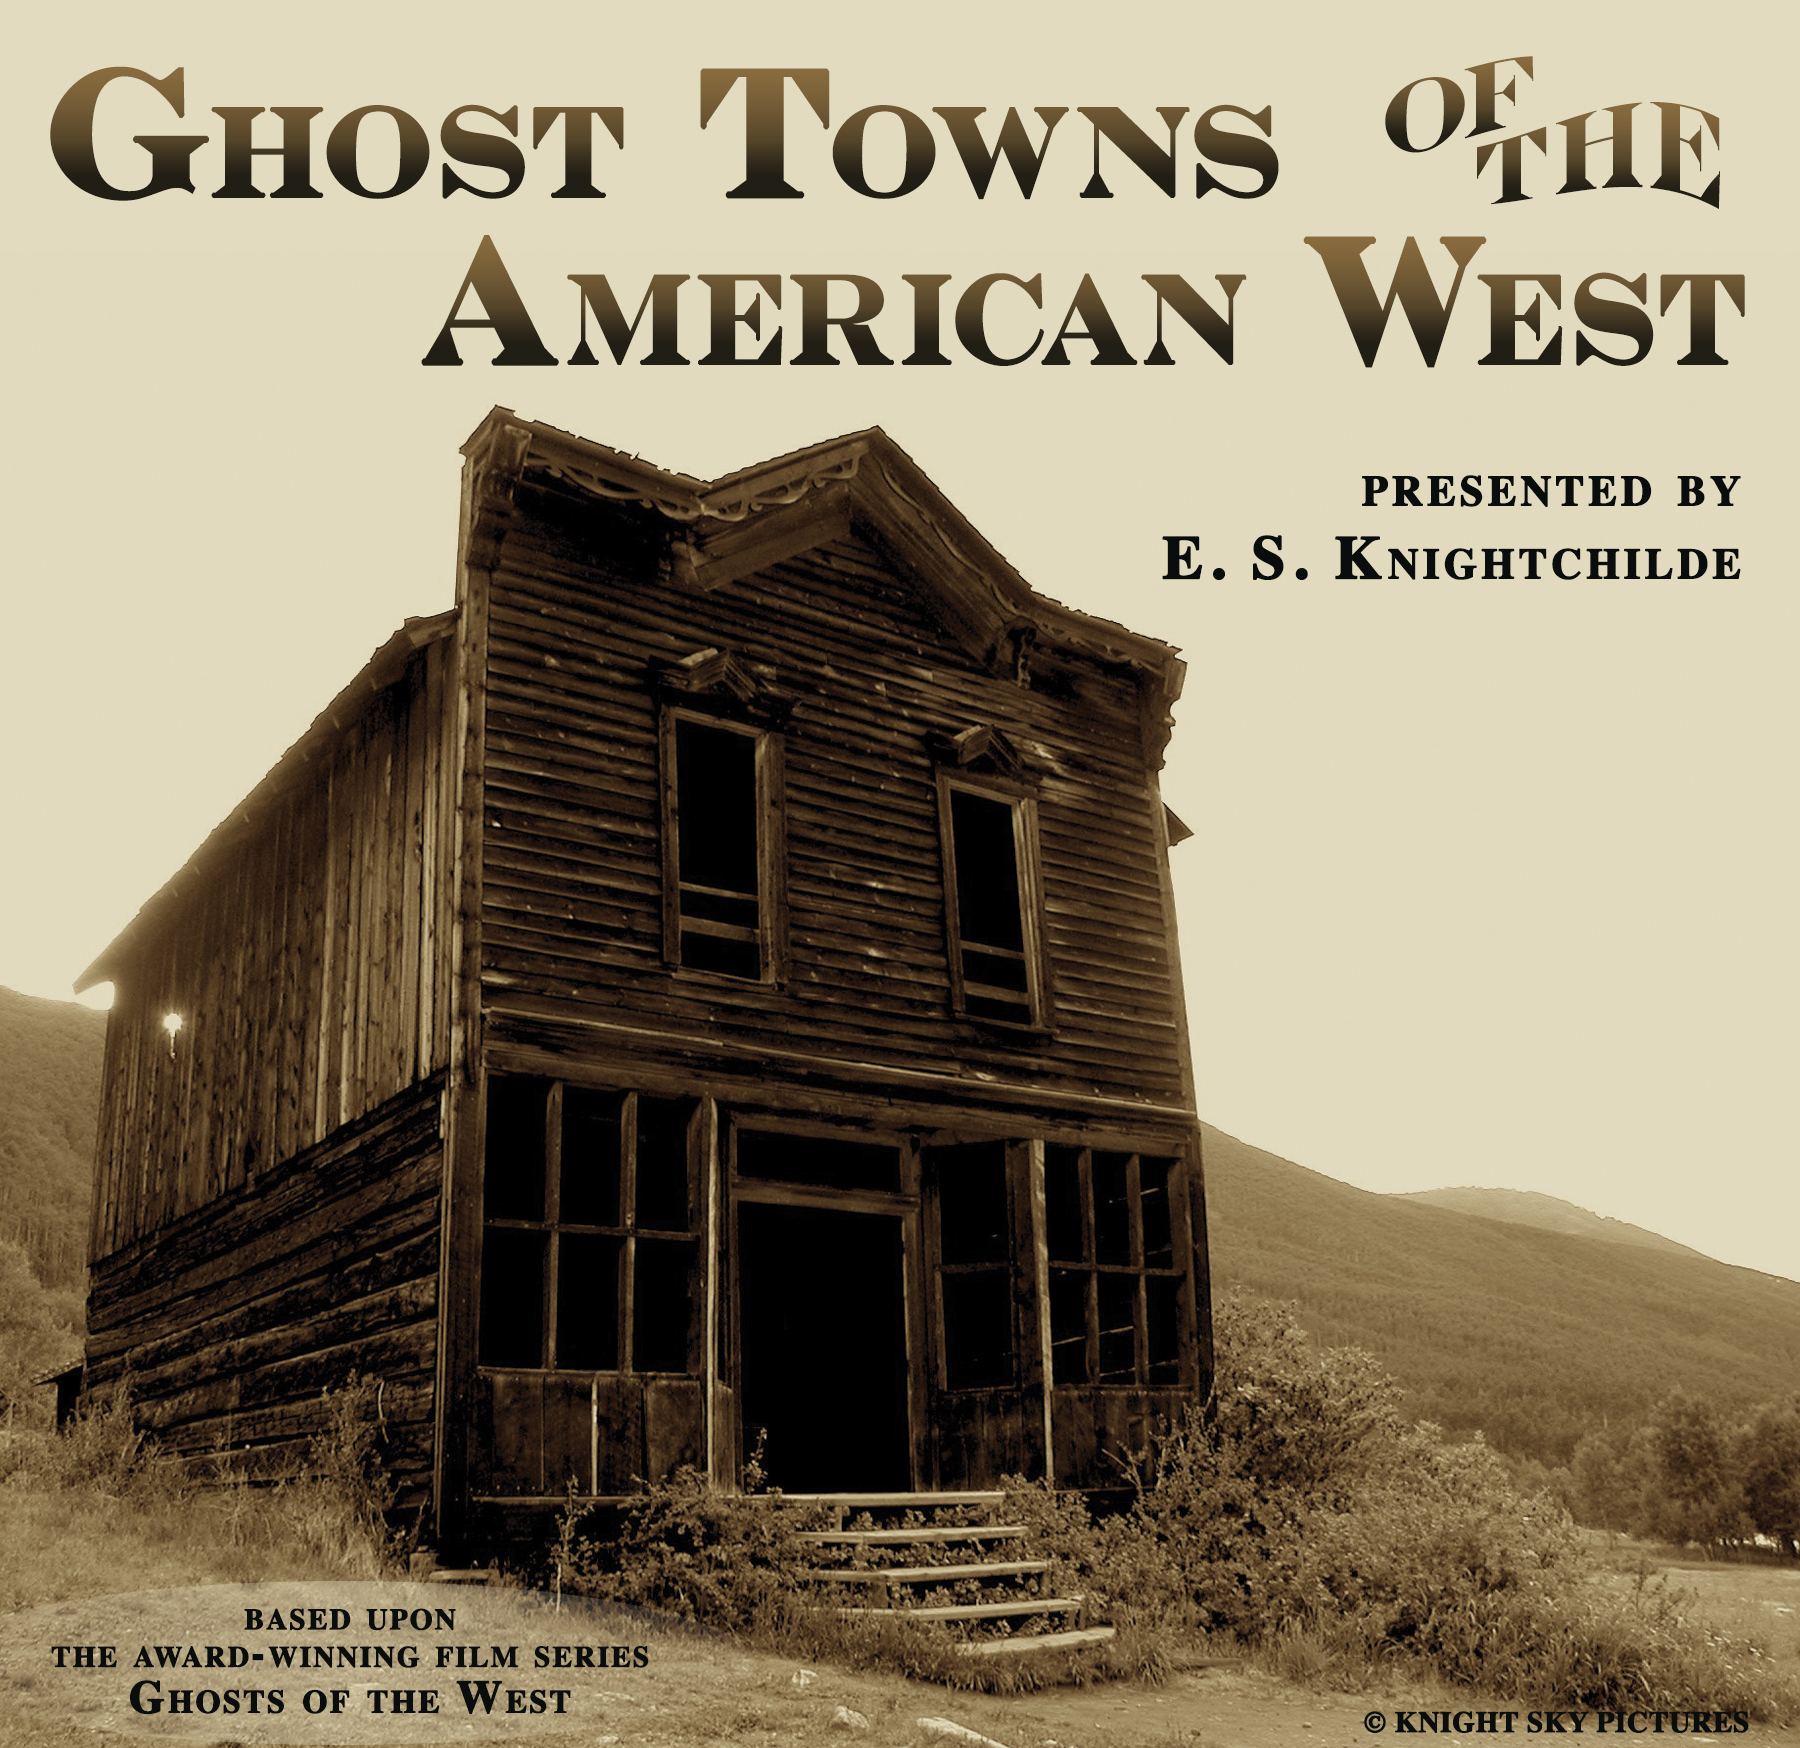 Ghost Towns of the American West presentation poster